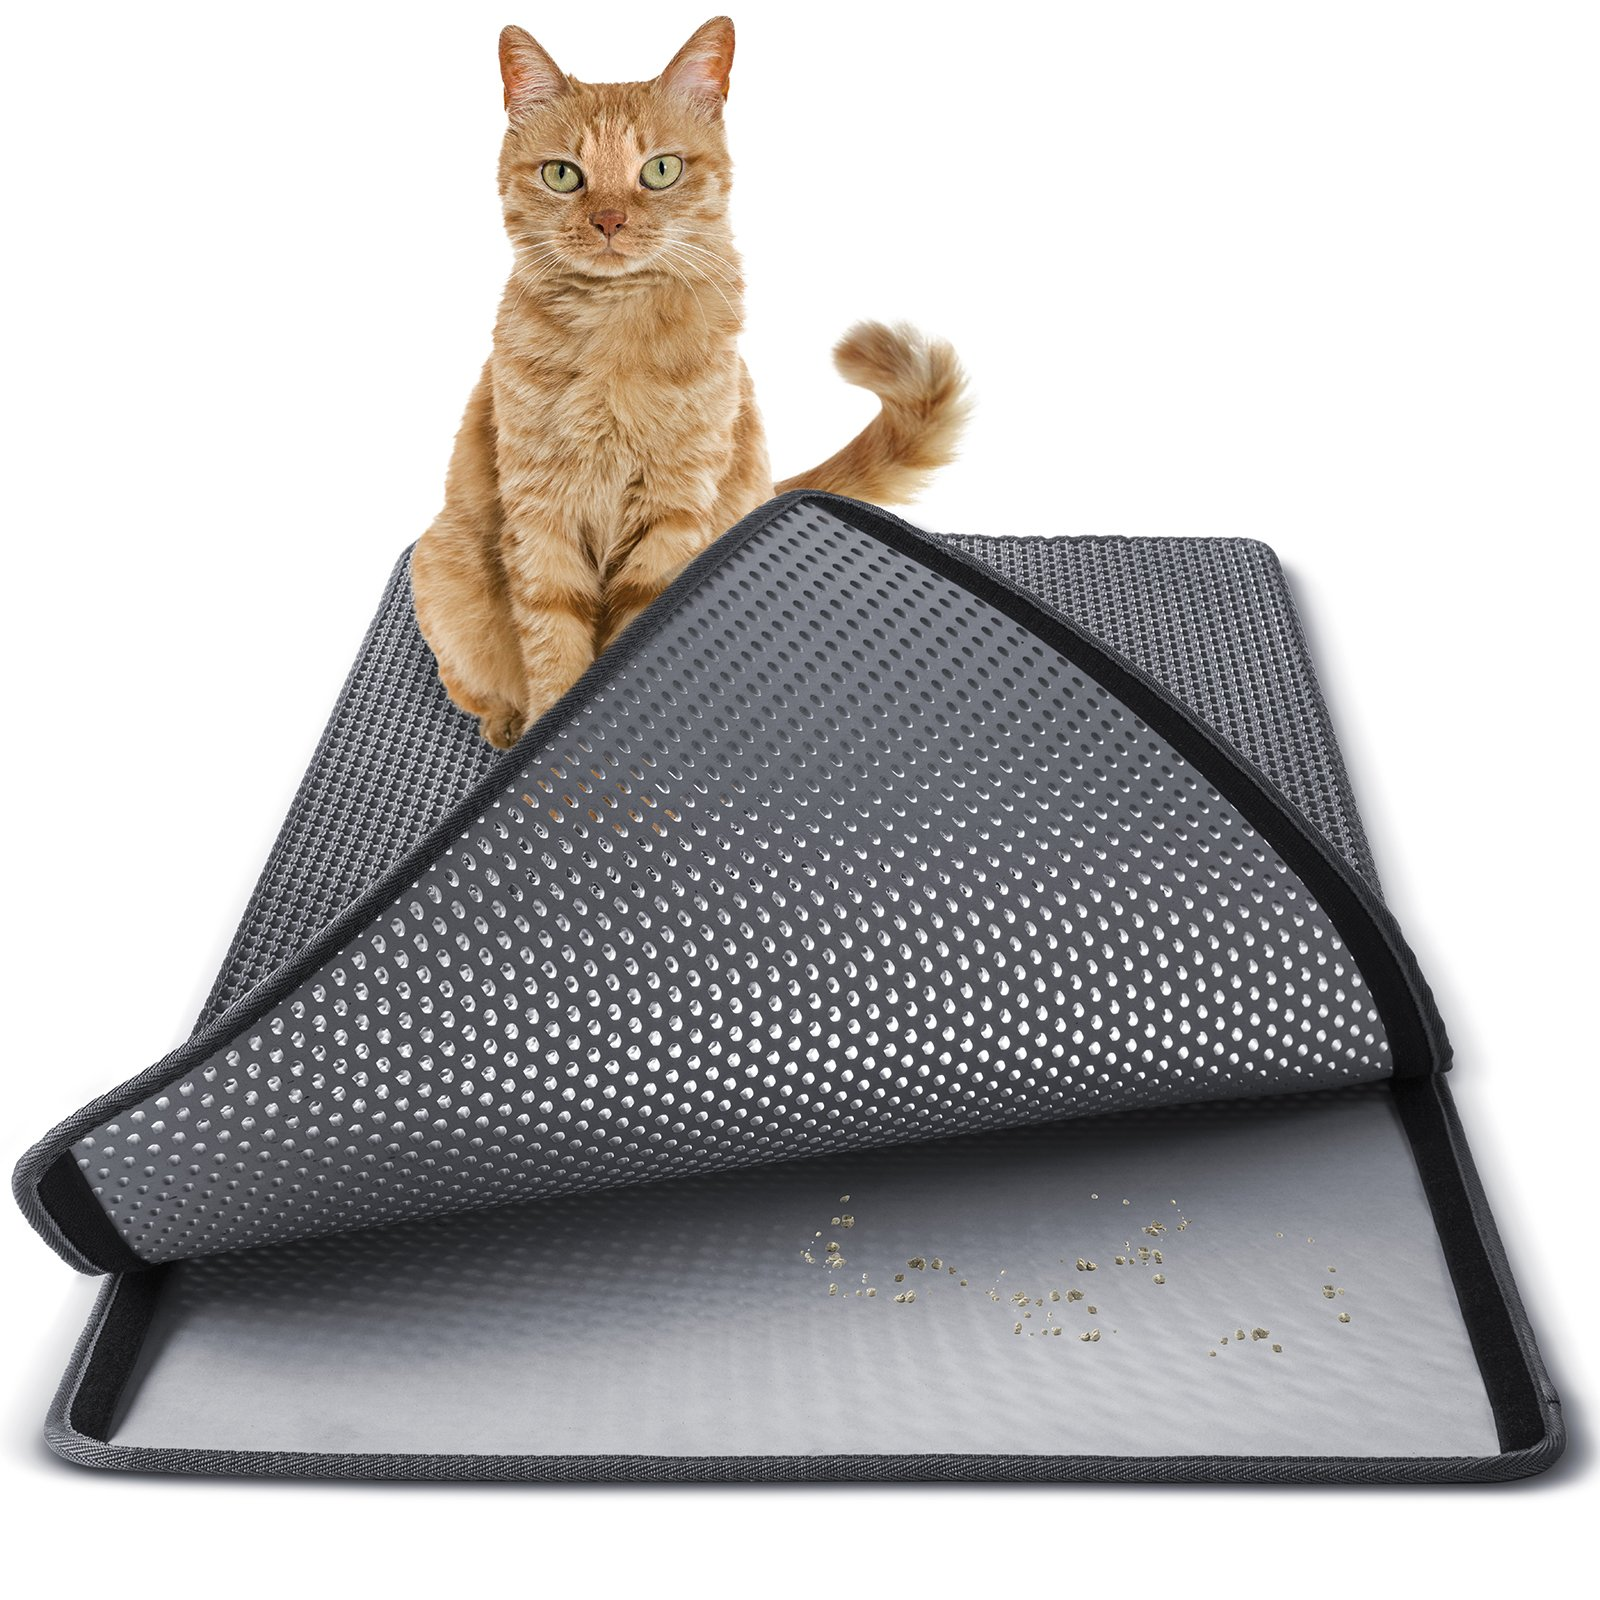 Paws & Pals Cat Litter Mat 30'' x 23'' Inch Jumbo Large Size Non Slip Litter Trap Pad Litter Boxes - Gray